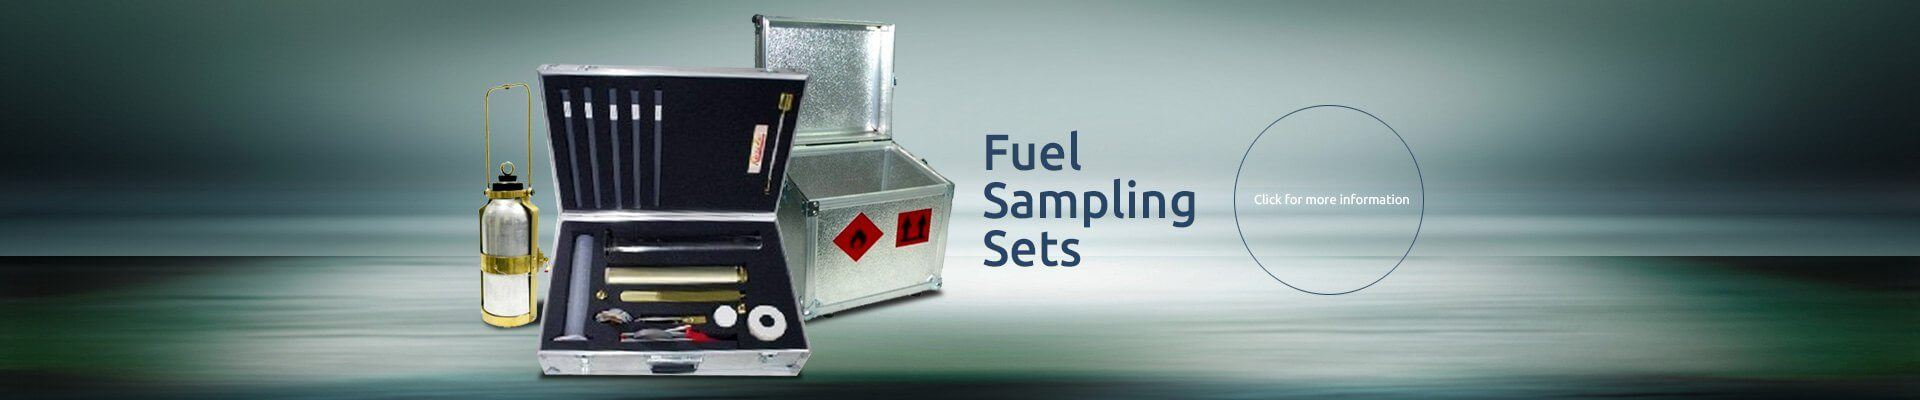 Fuel Sampling Sets